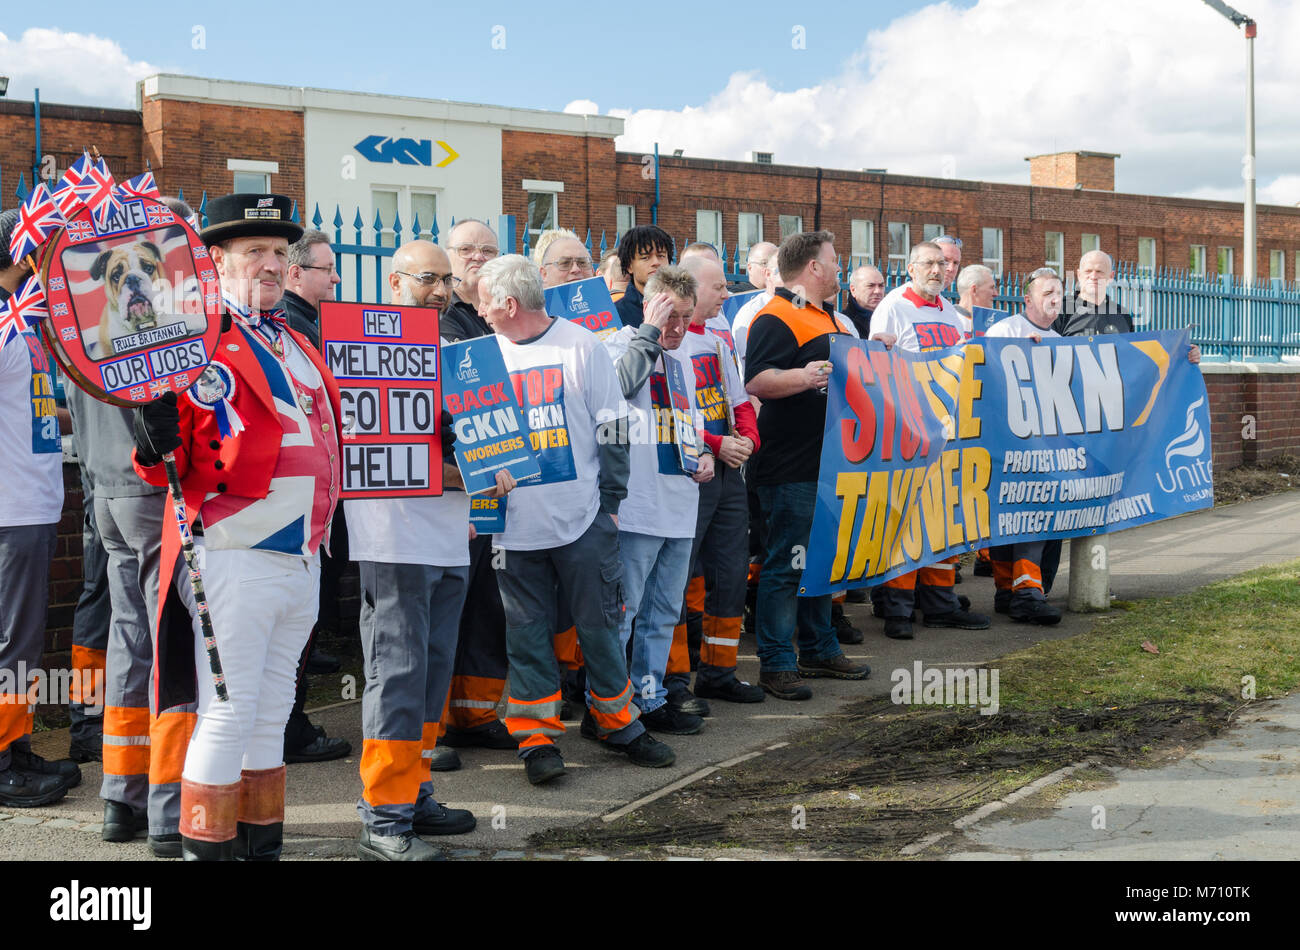 Birmingham, UK. 7th March 2018. Protest against proposed takeover of British automotive company GKN by Melrose International - Stock Image